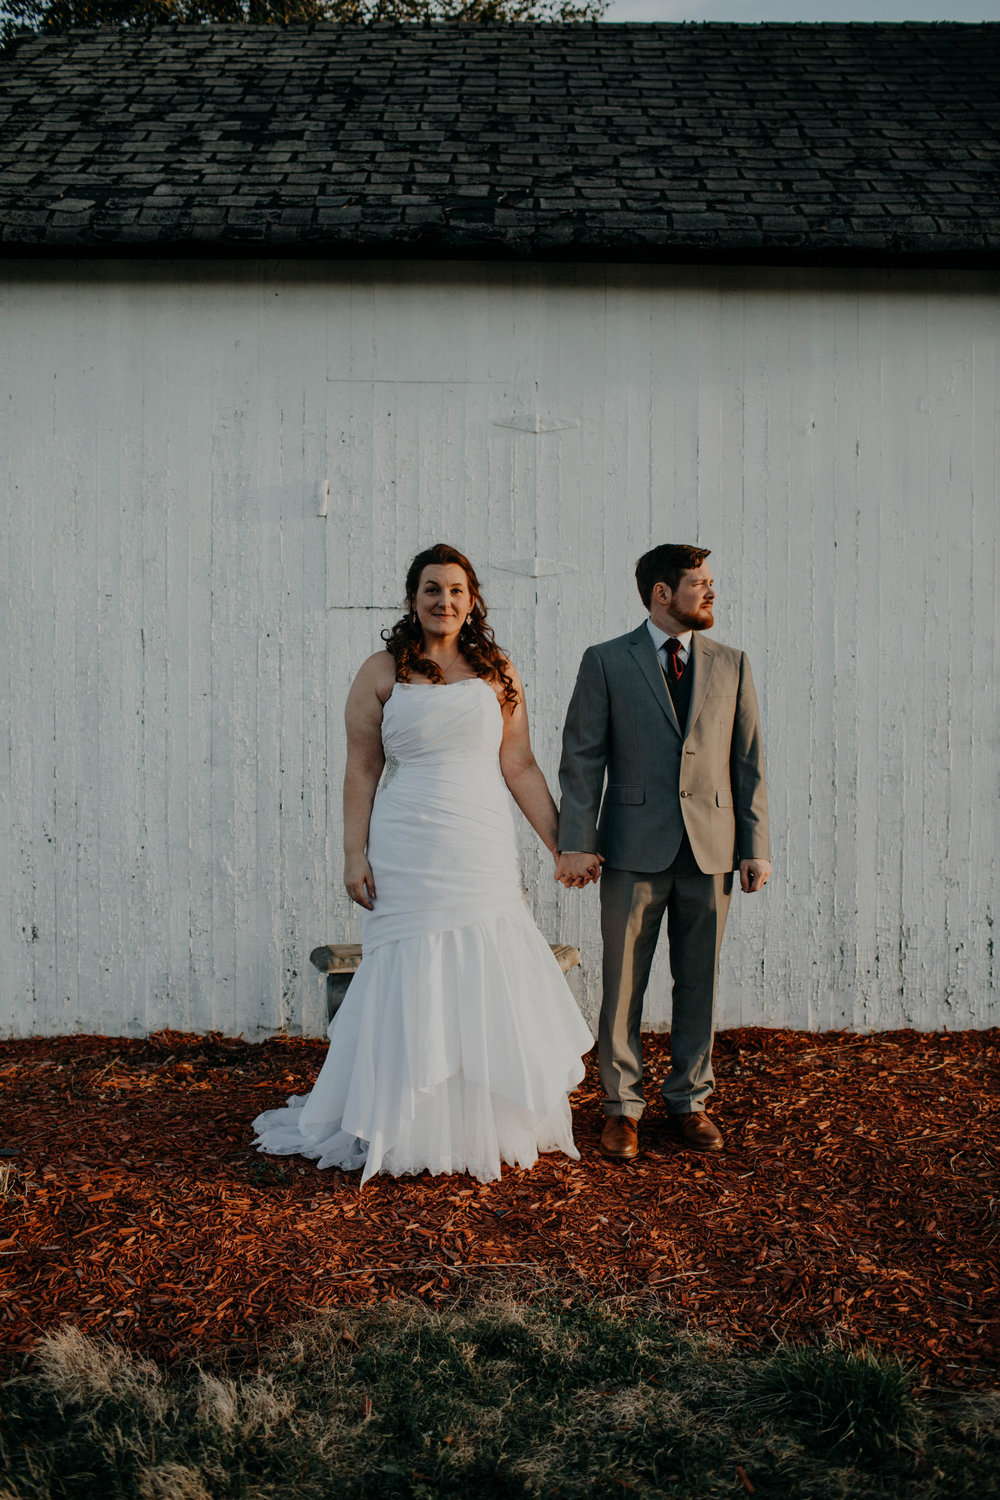 kentucky wedding photography grace e jones photography90.jpg